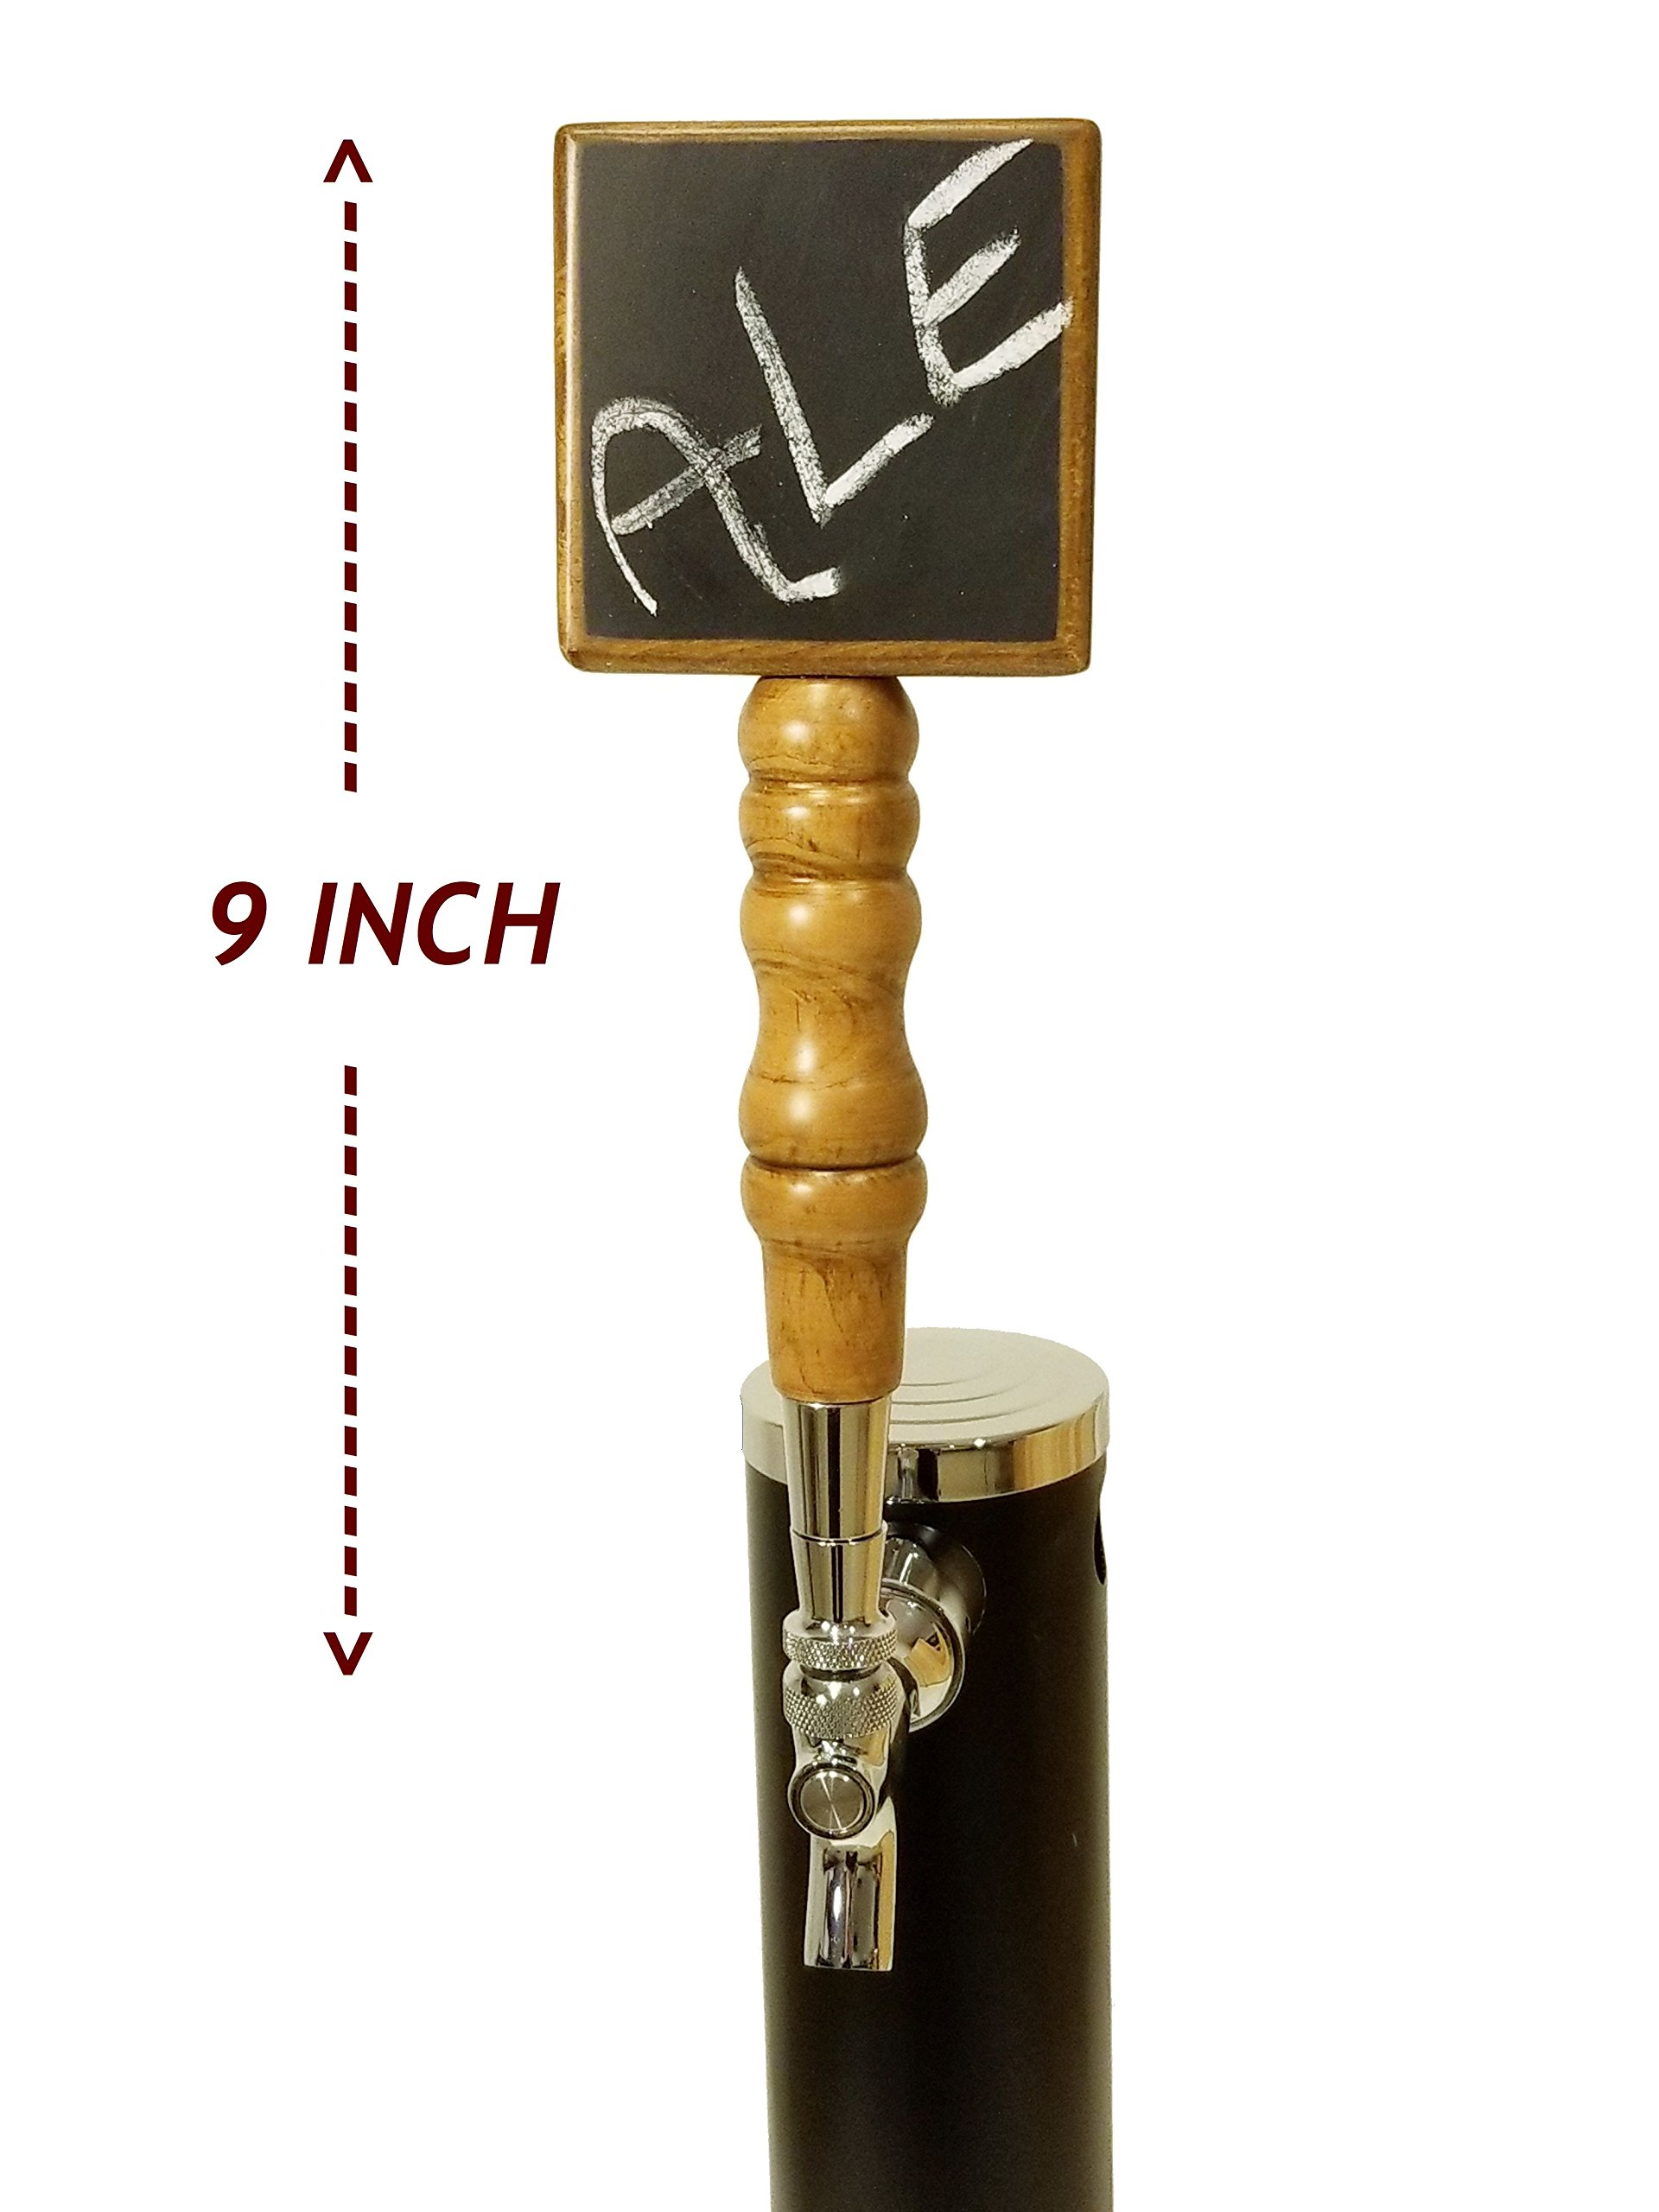 CHALKBOARD BEER TAP HANDLE - NATURAL PREMIUM BEECH AND SCHIMA SUPERBA WOOD (CHERRY STAIN) - EXTRA-LONG 9-INCH BEER FAUCET HANDLE FOR BEER TOWER TAPS - BEERGON (1-PACK) by BEERGON (Image #2)